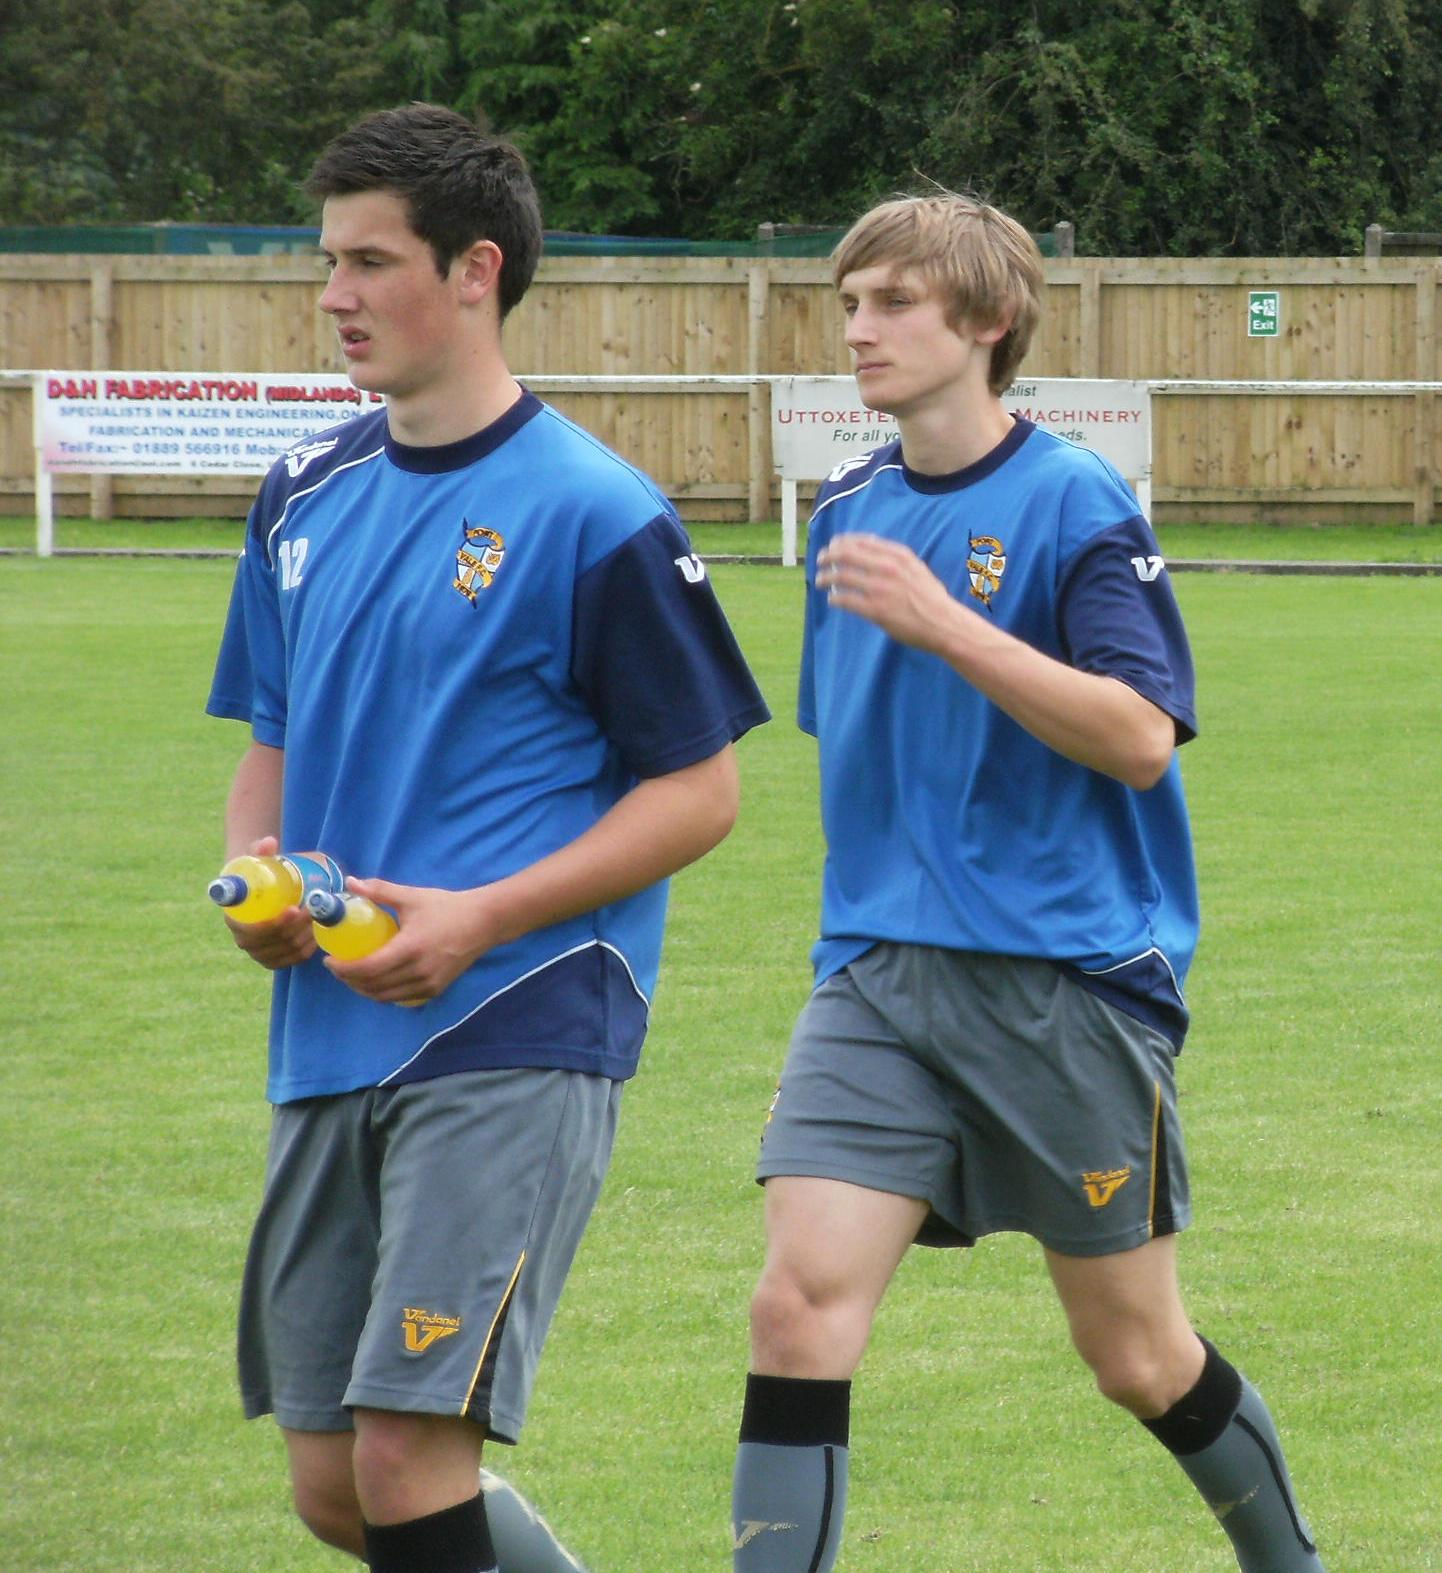 vale-youth-vs-rocester-14jul12-008